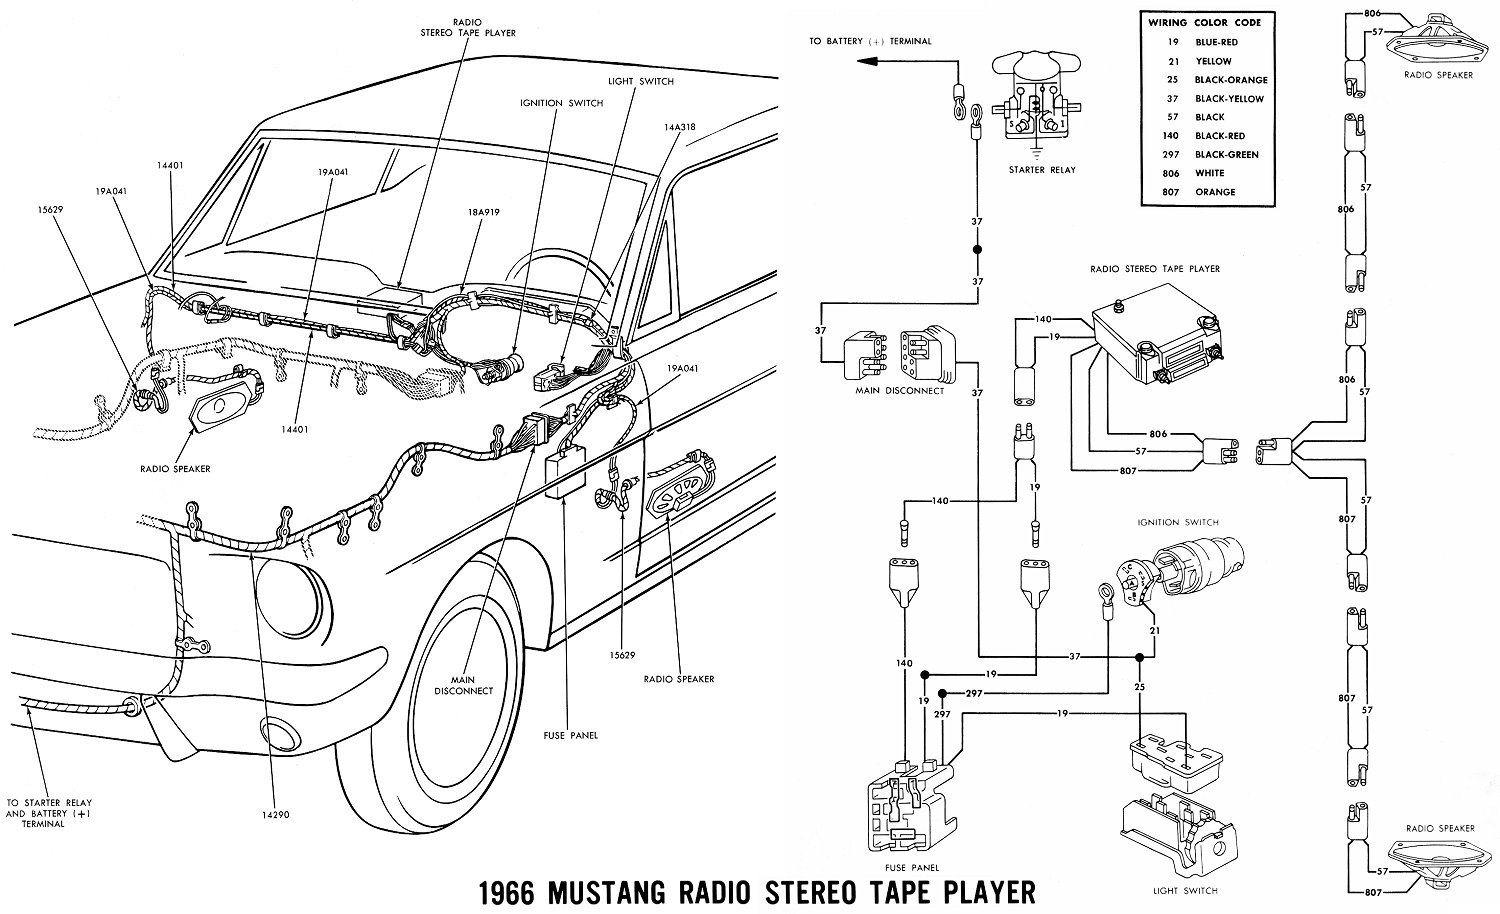 66stereo 66 mustang wiring diagram radio tape 66 mustang turn signal wiring 1965 mustang turn signal wiring diagram at bakdesigns.co